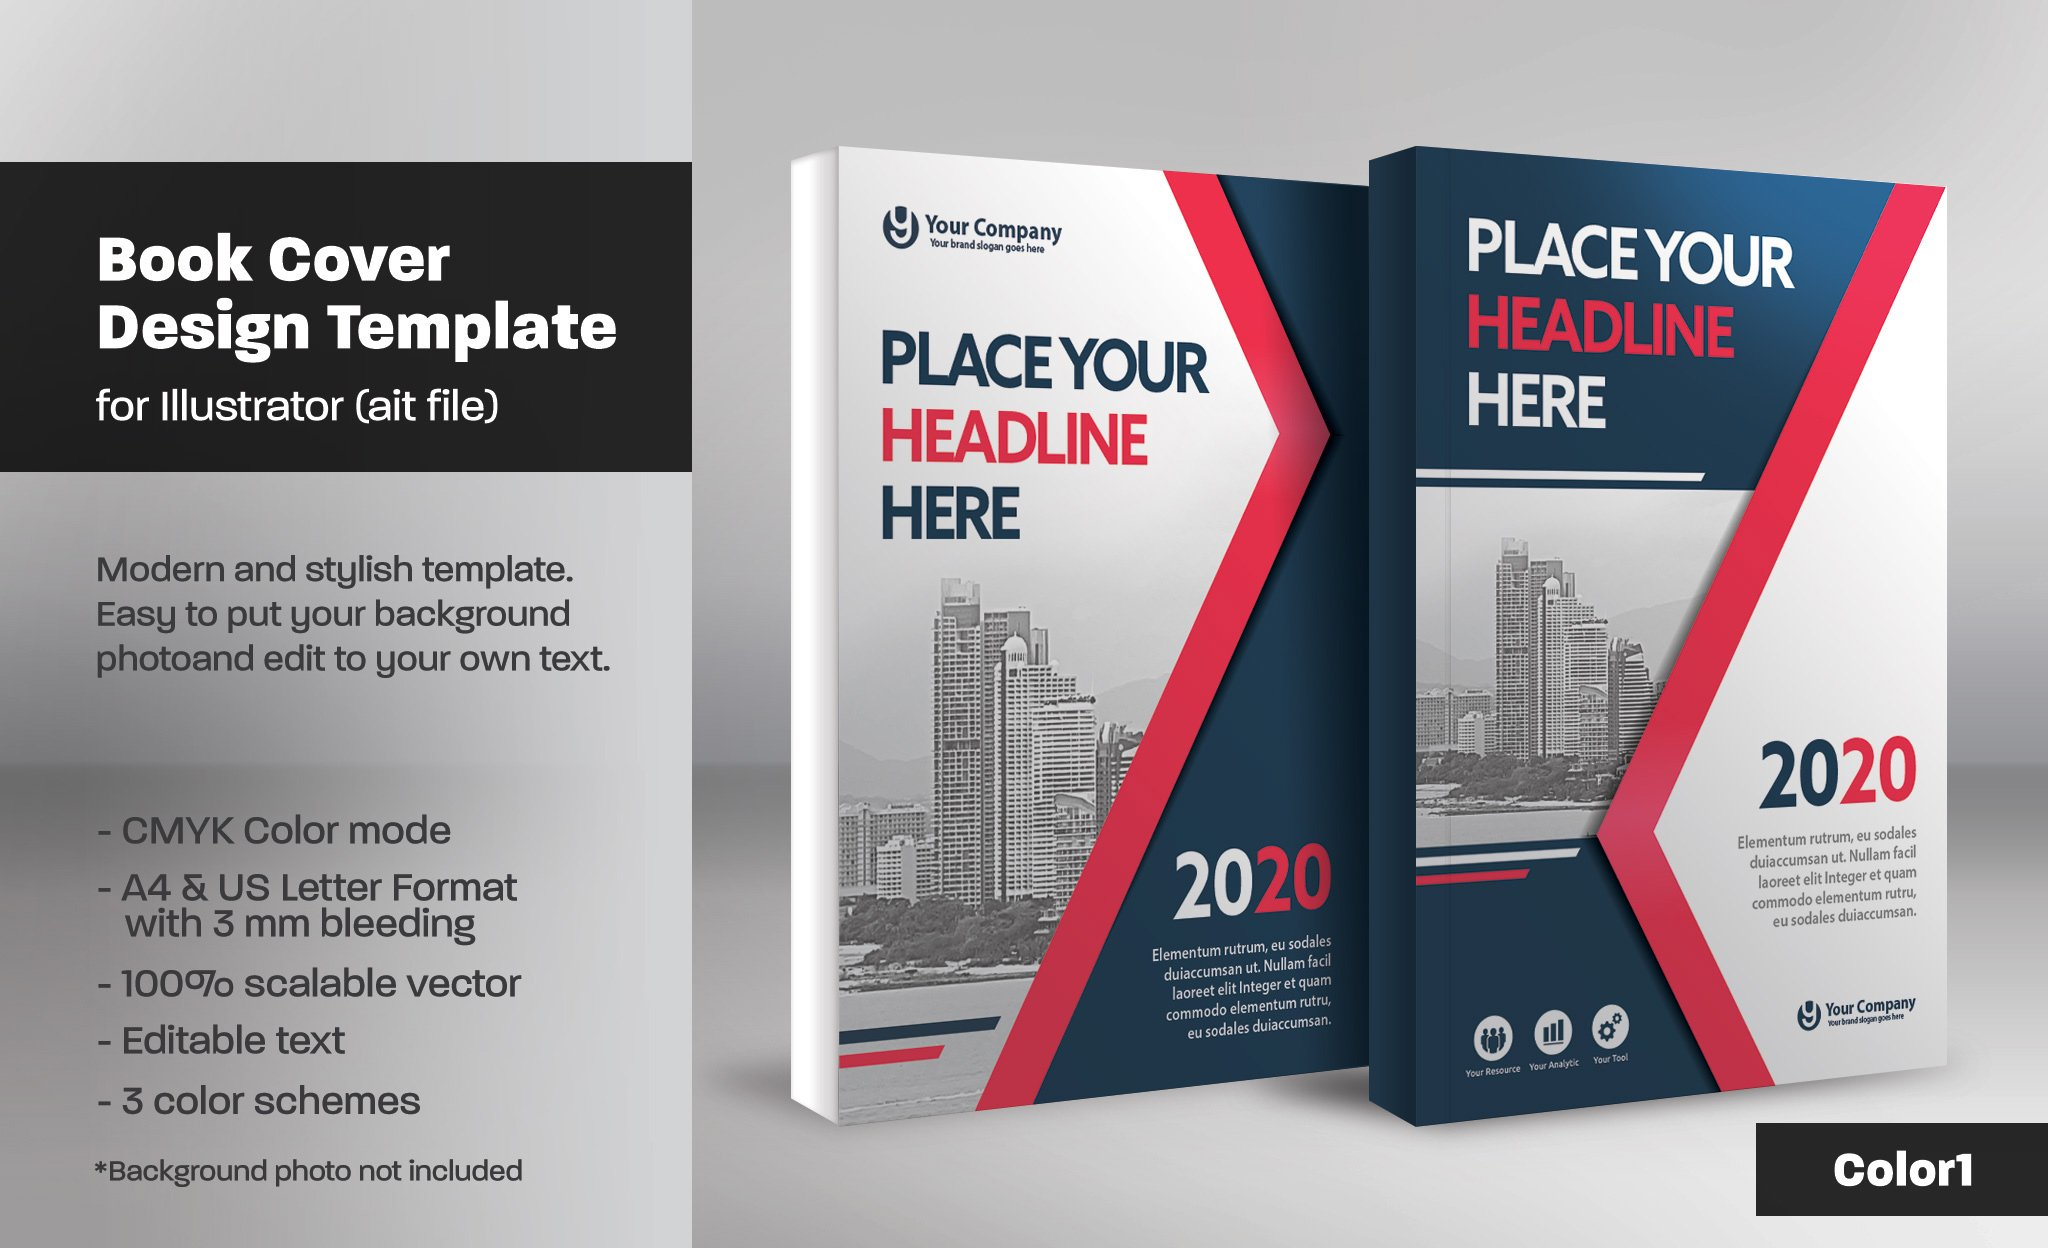 Book Cover Design Template Ks : Book cover template templates creative market